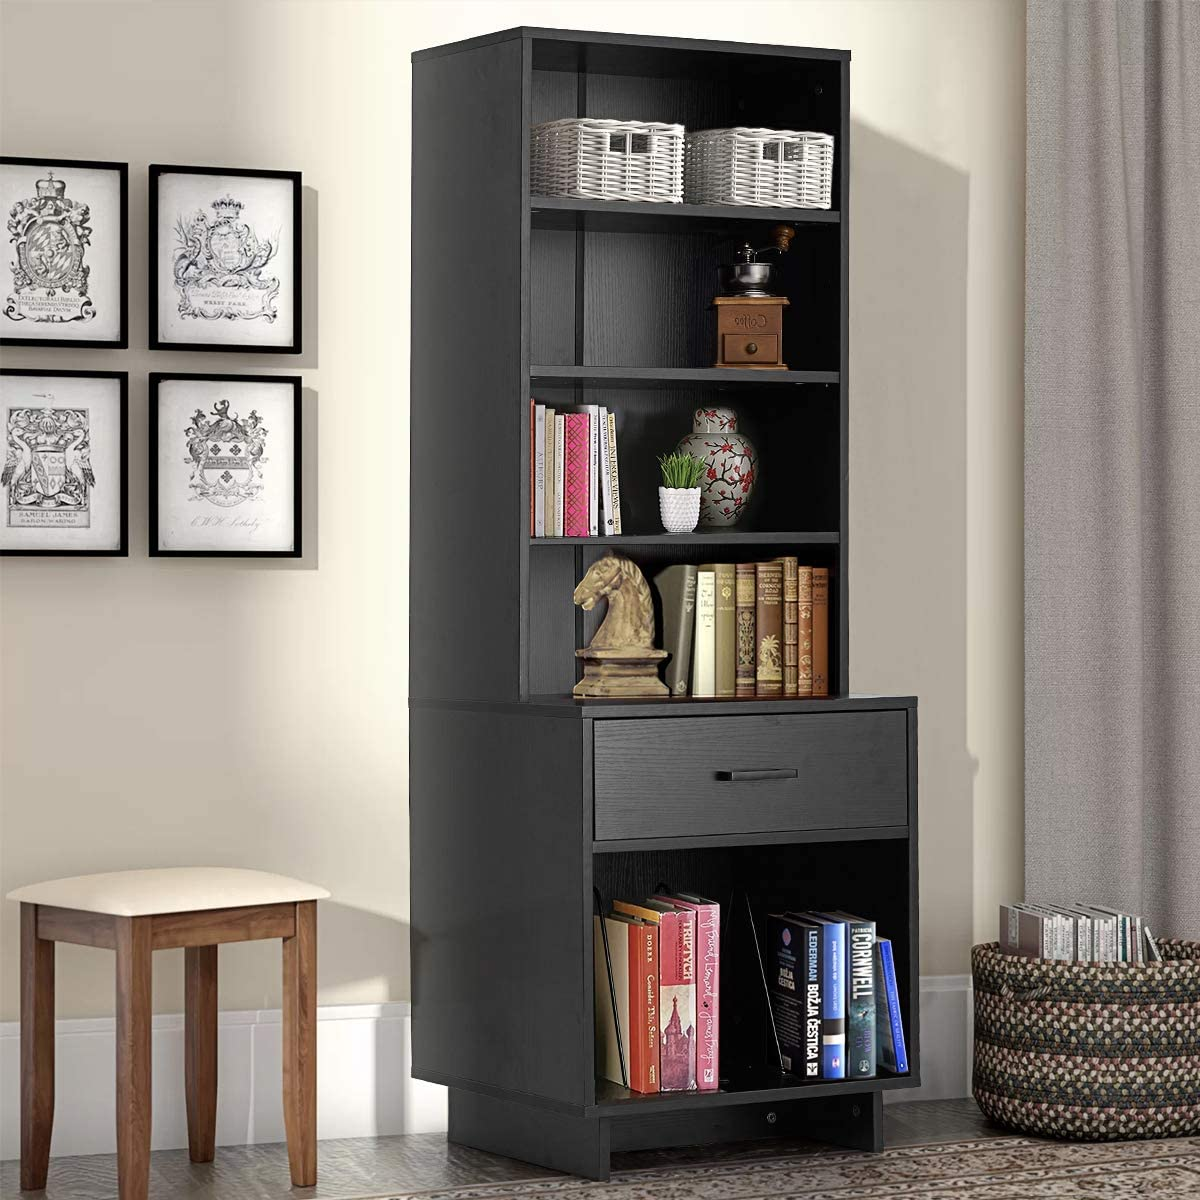 MELLCOM Wooden Bookcase Storage Cabinet Bookshelf with 1 Drawer and 3 Shelves, Modern Standing Shelf, Side Corner Storage Cabinet Decor Furniture for Home Office Black